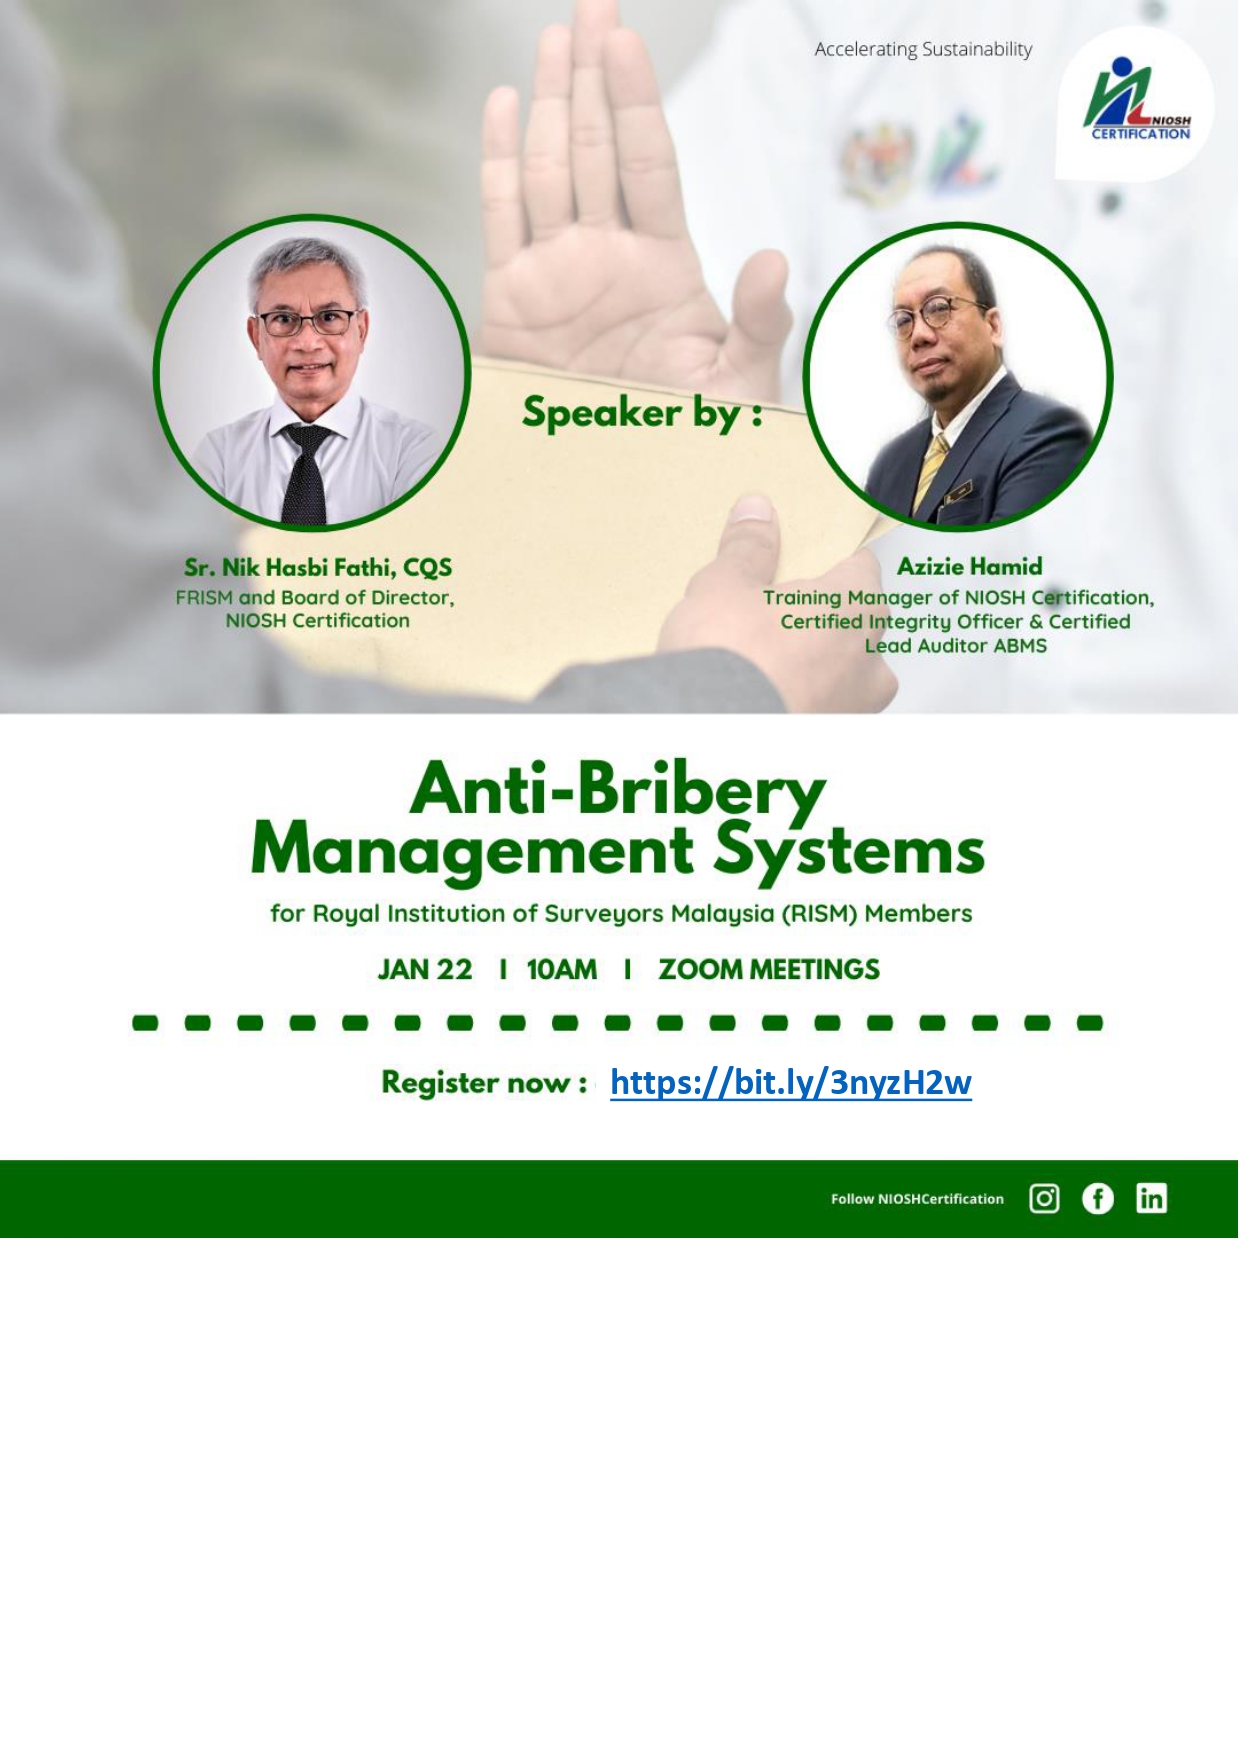 Anti-Bribery Management Systems